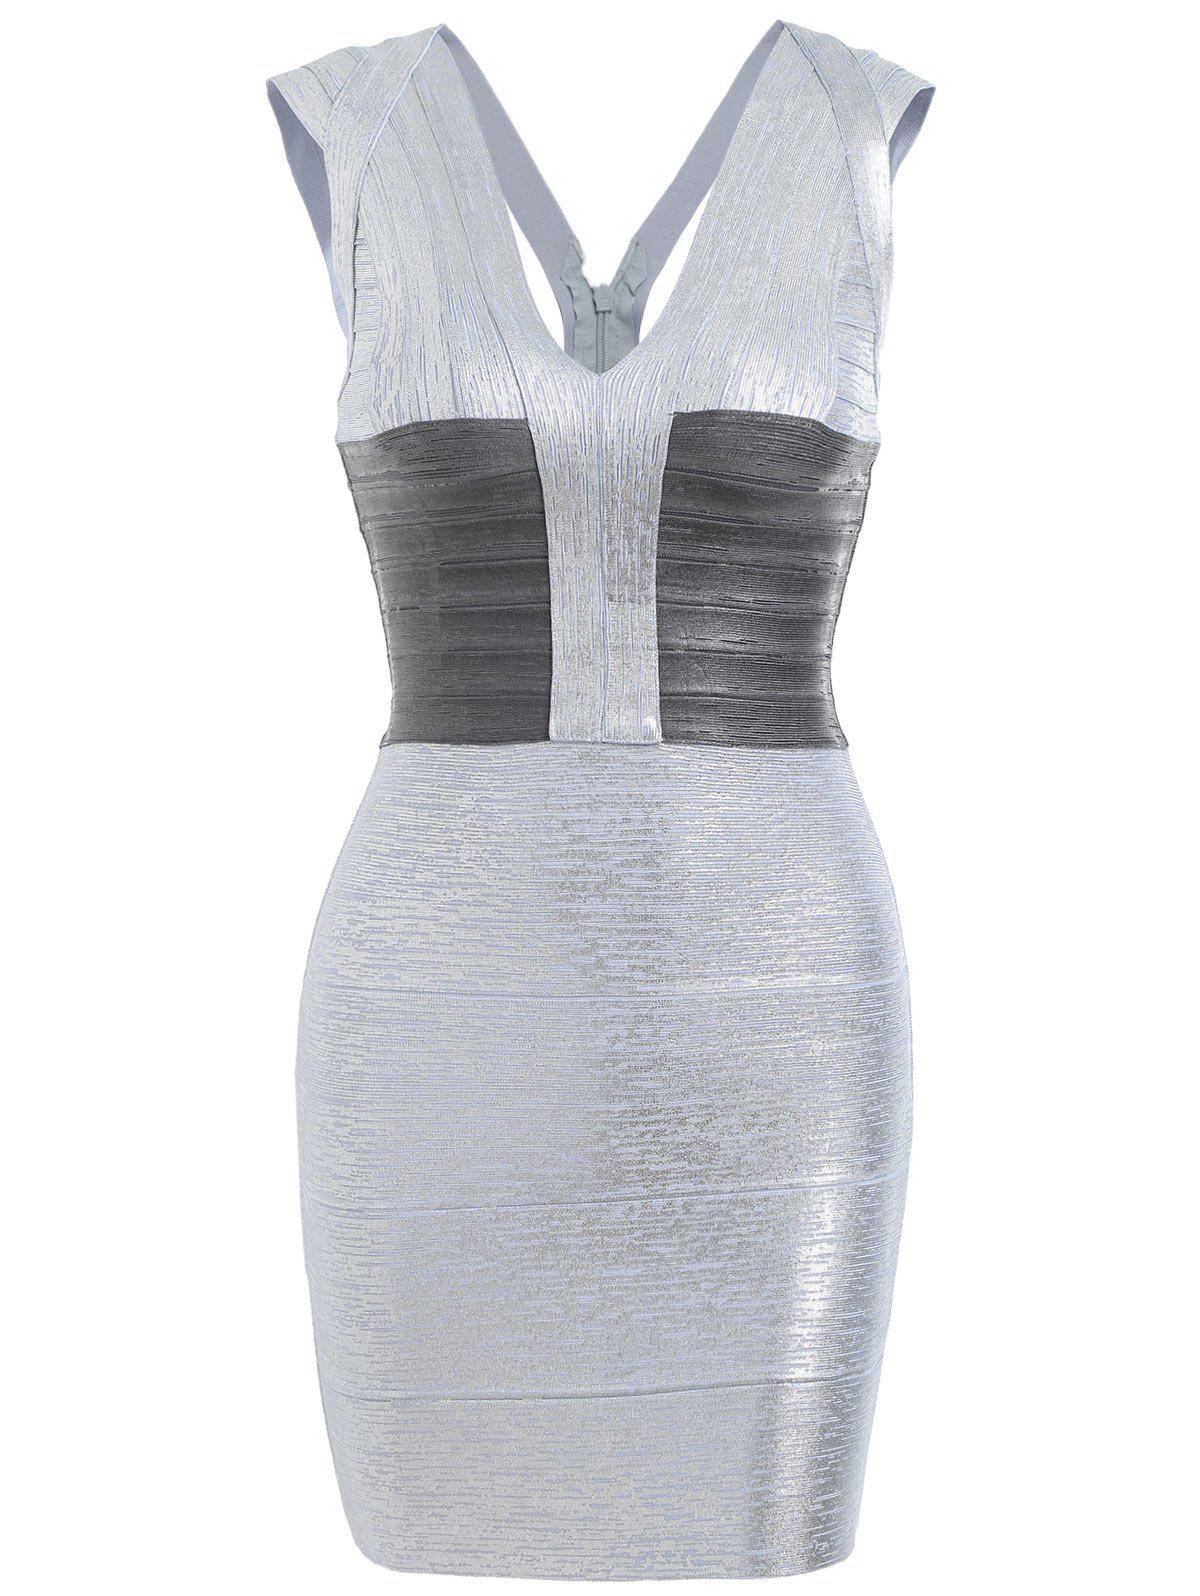 V Neck Sleeveless Metallic Bandage Dress - SILVER L